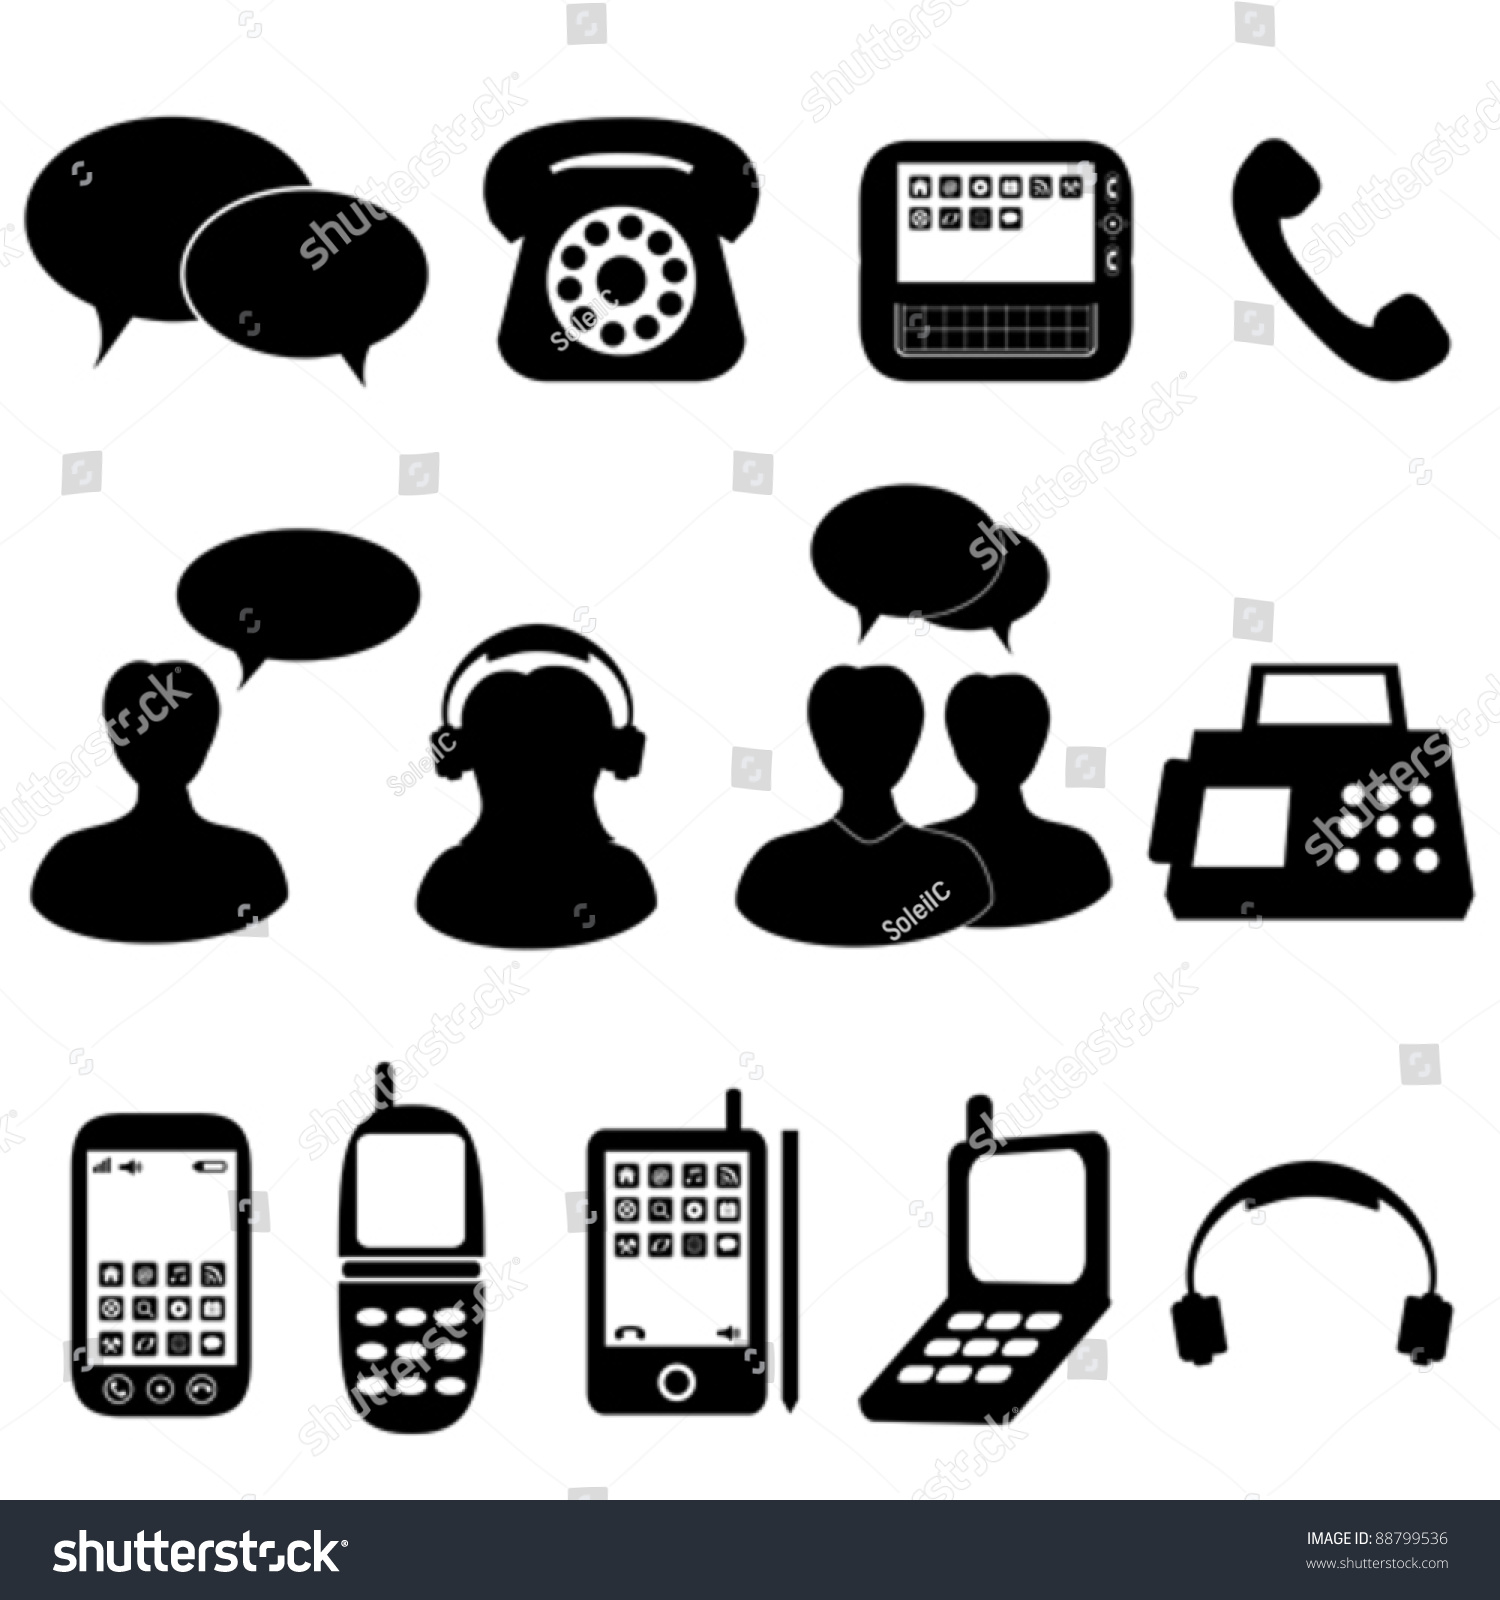 Stock Vector Telephone And